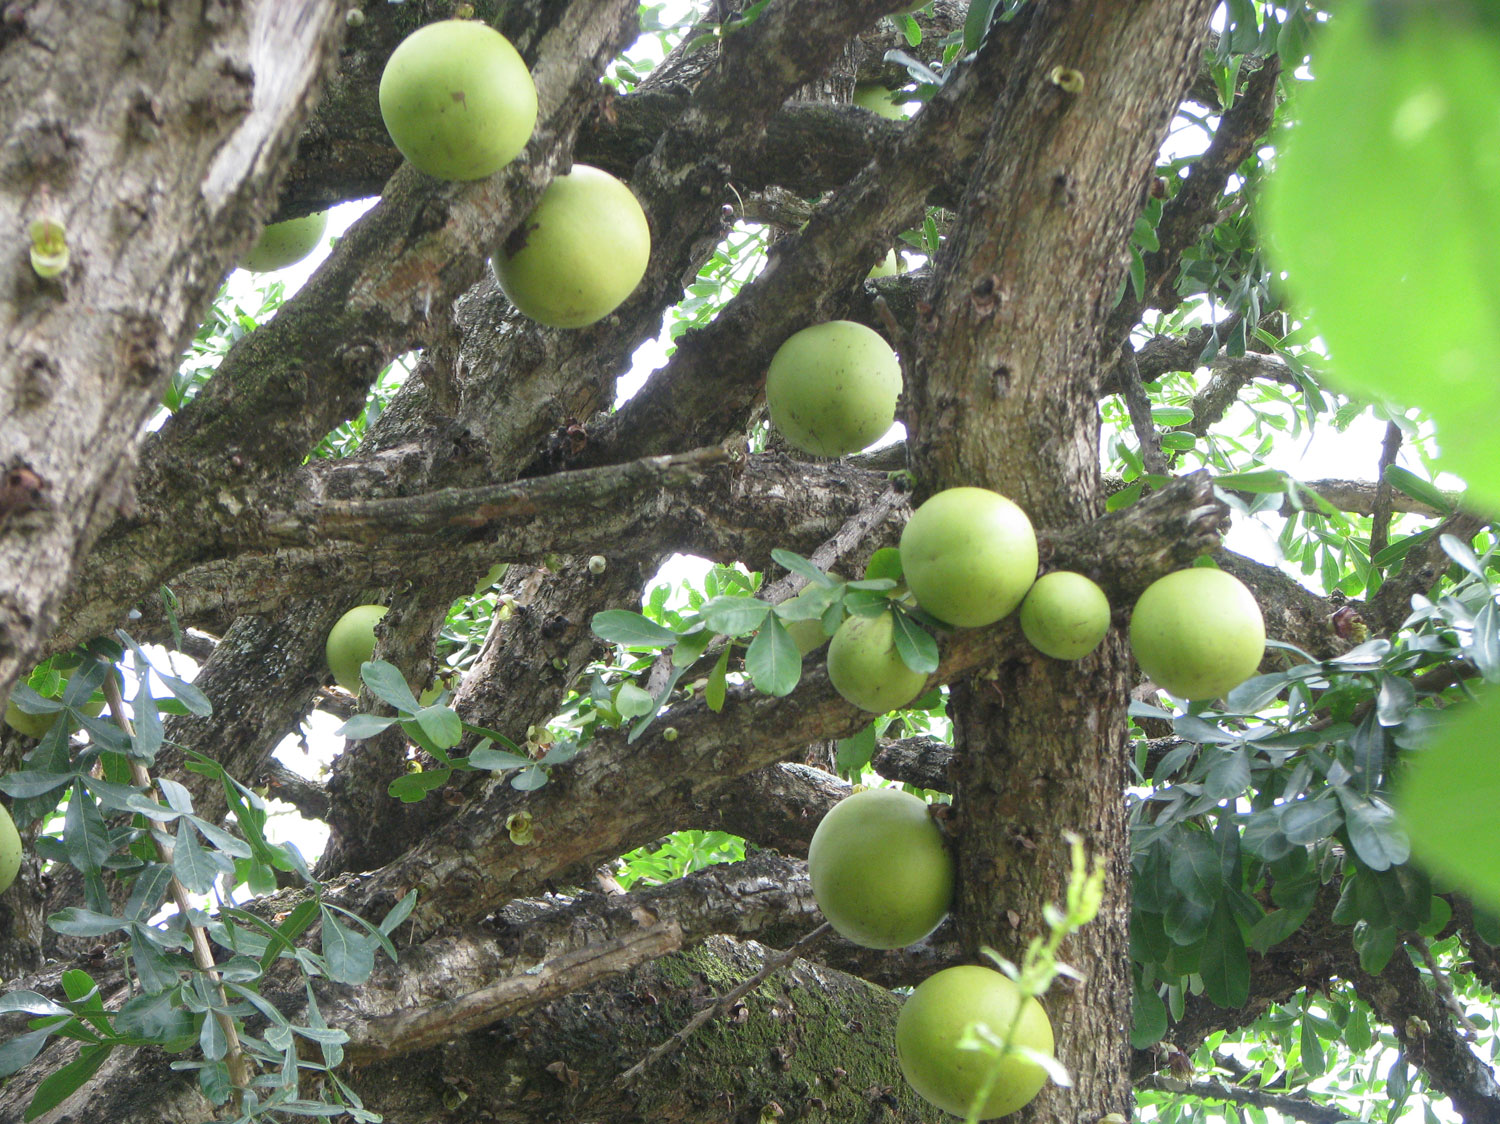 An interesting fruit that grows directly out of the main branches of the tree